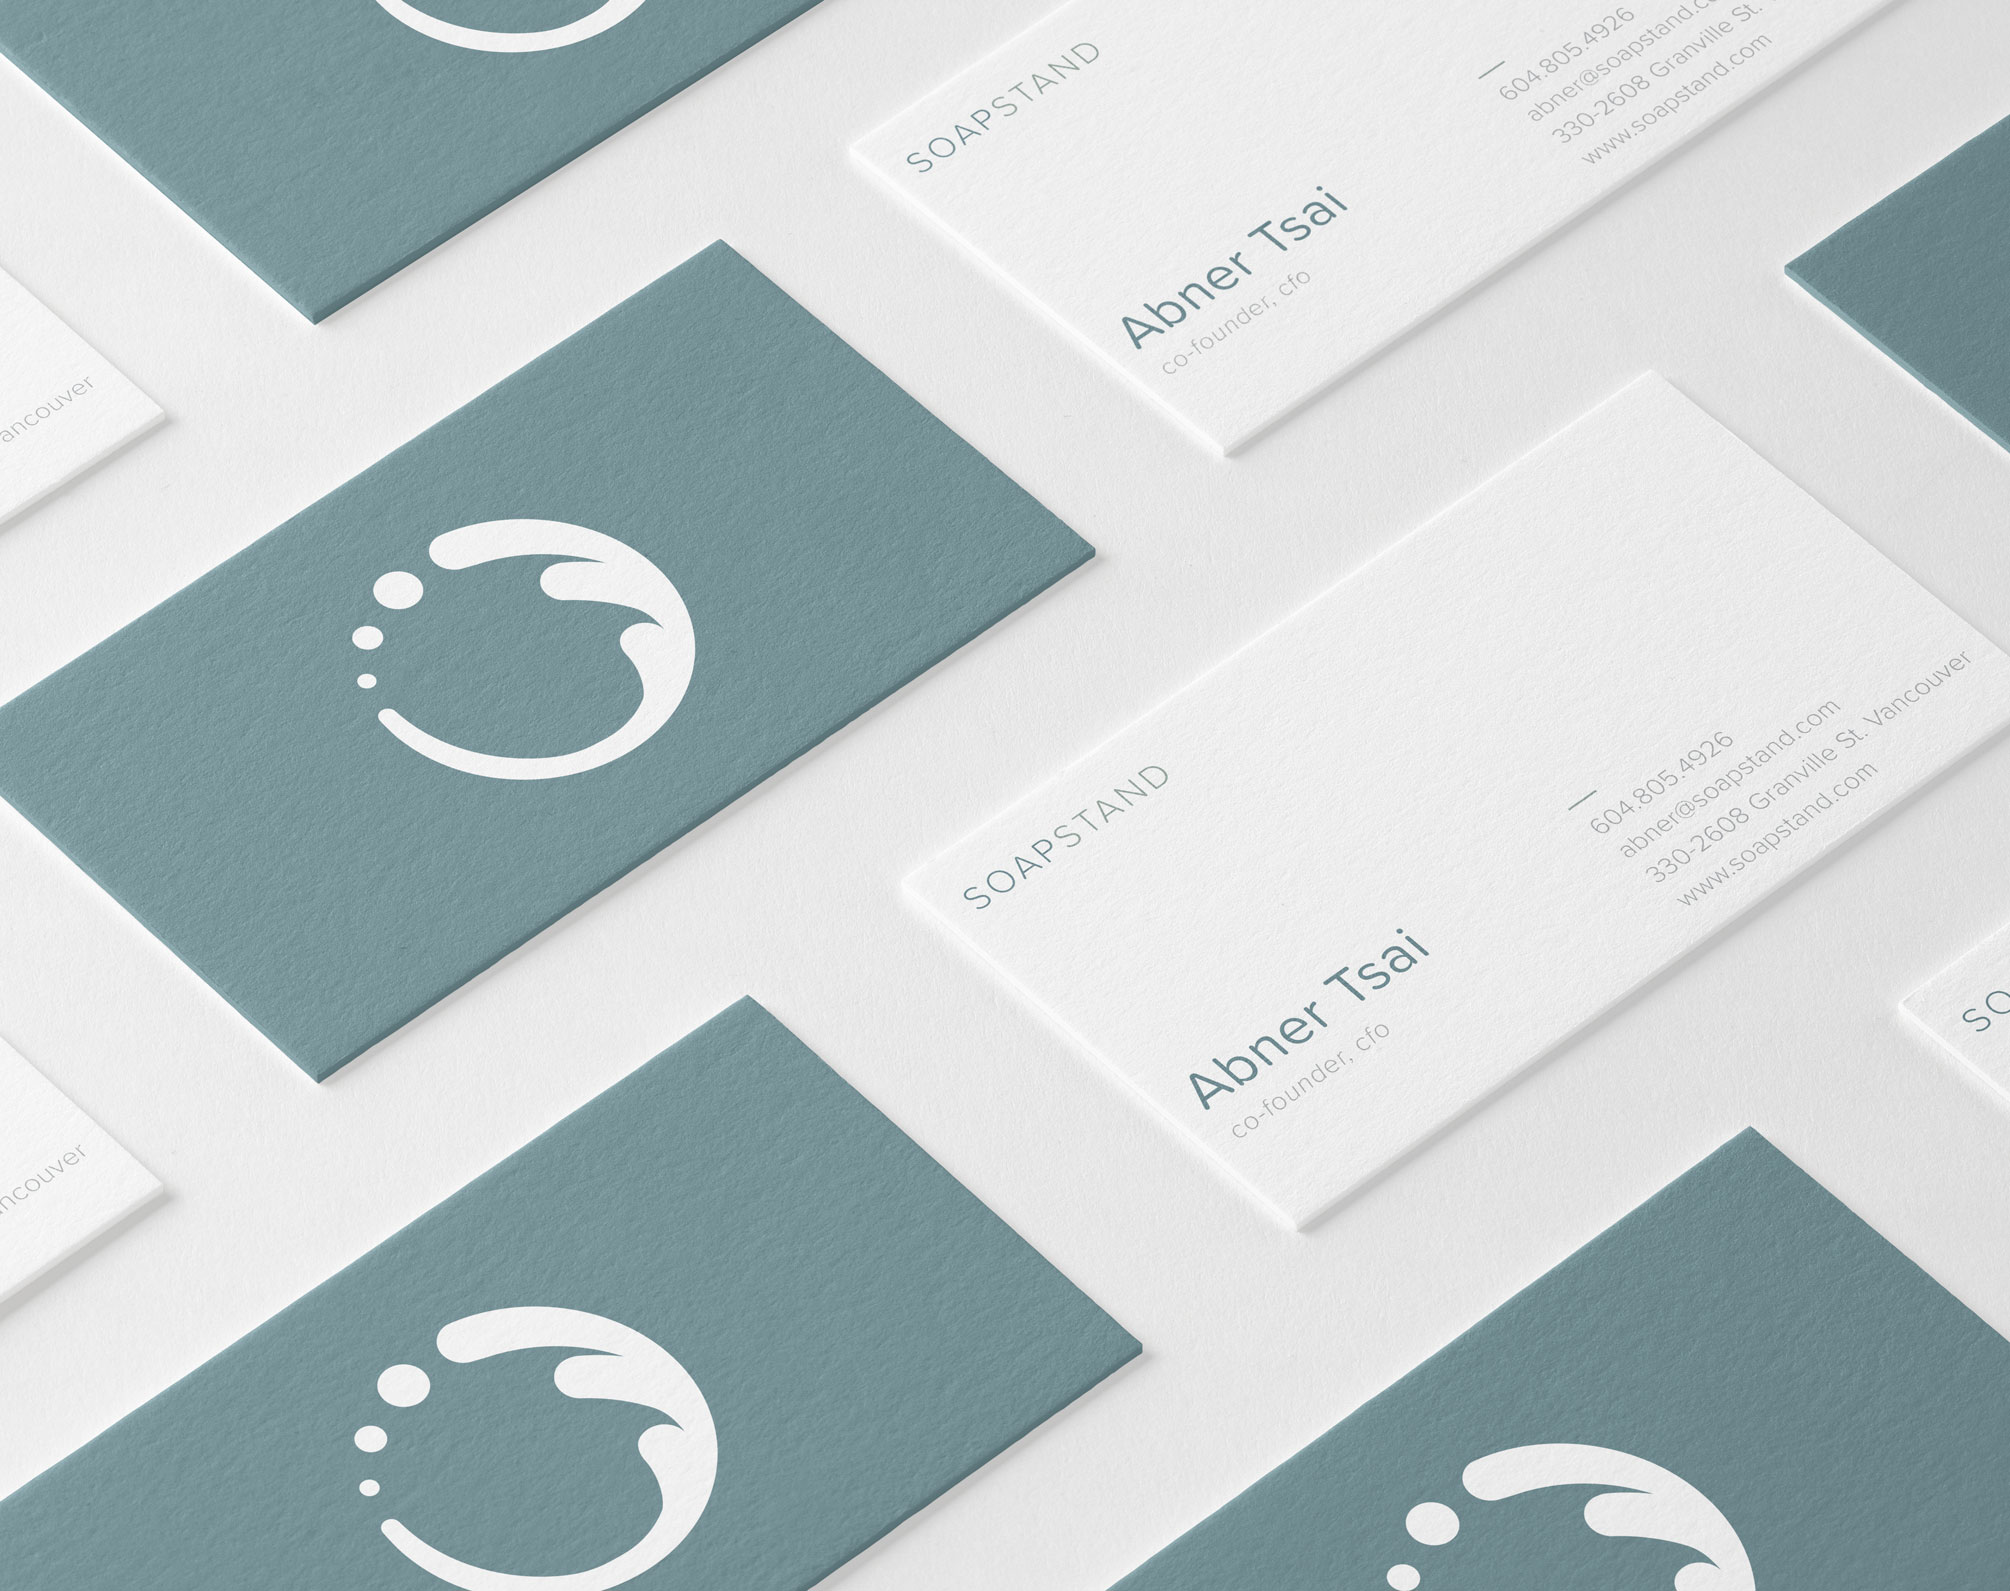 Soapstand Business Cards